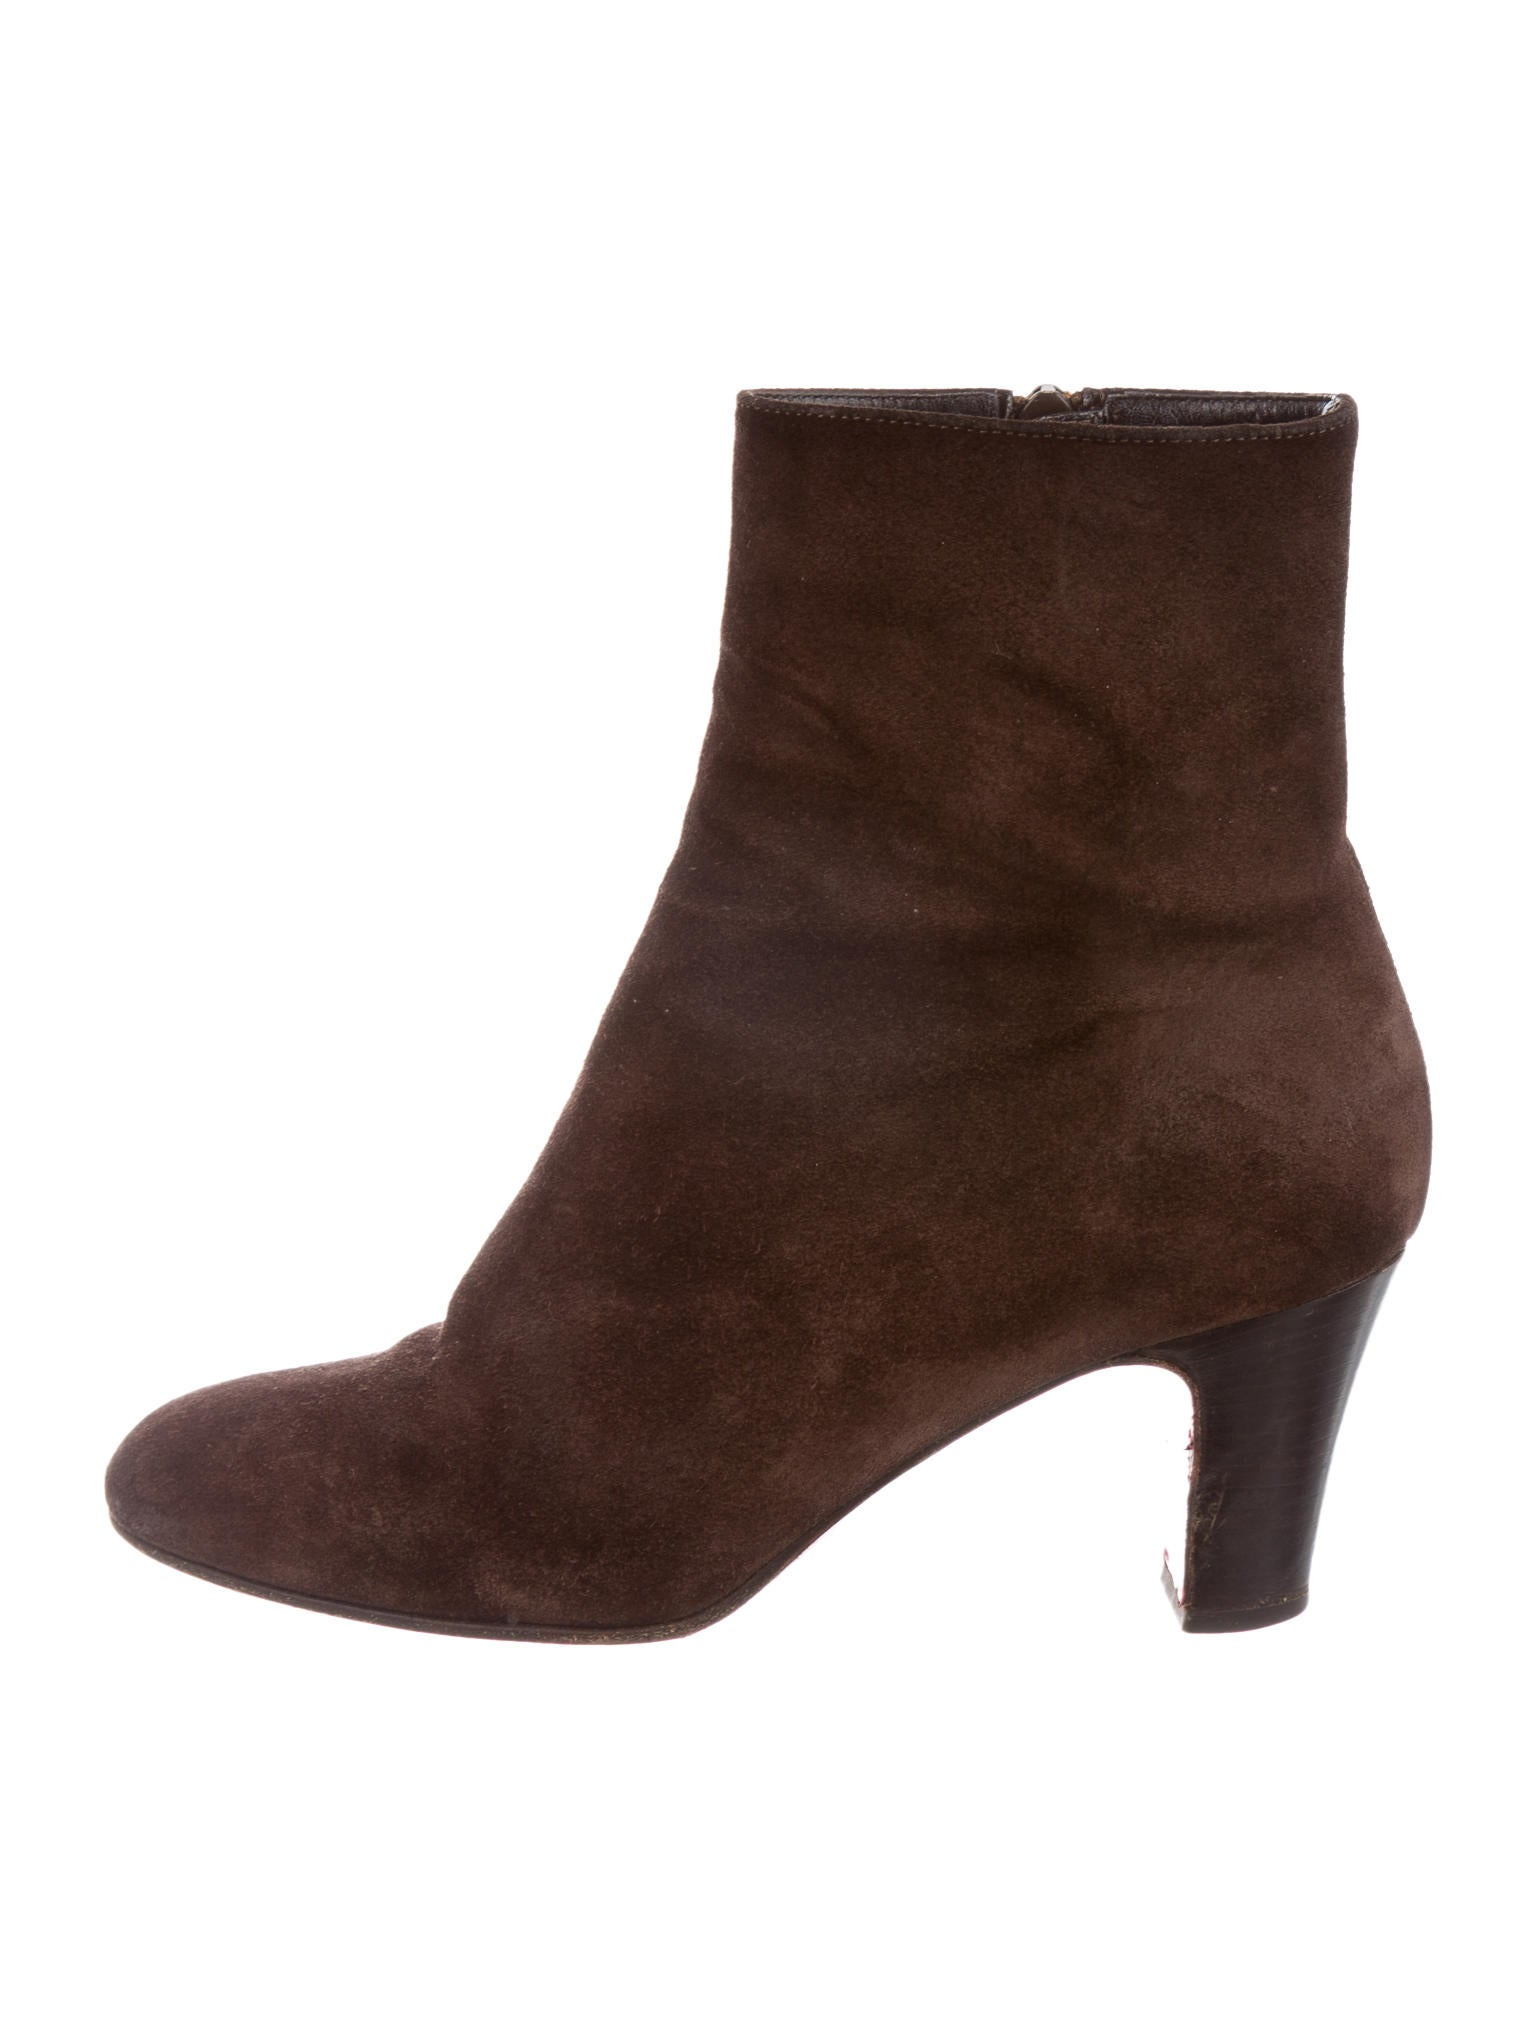 Christian Louboutin Suede Round-Toe Ankle Boots - Shoes - CHT42823 ...